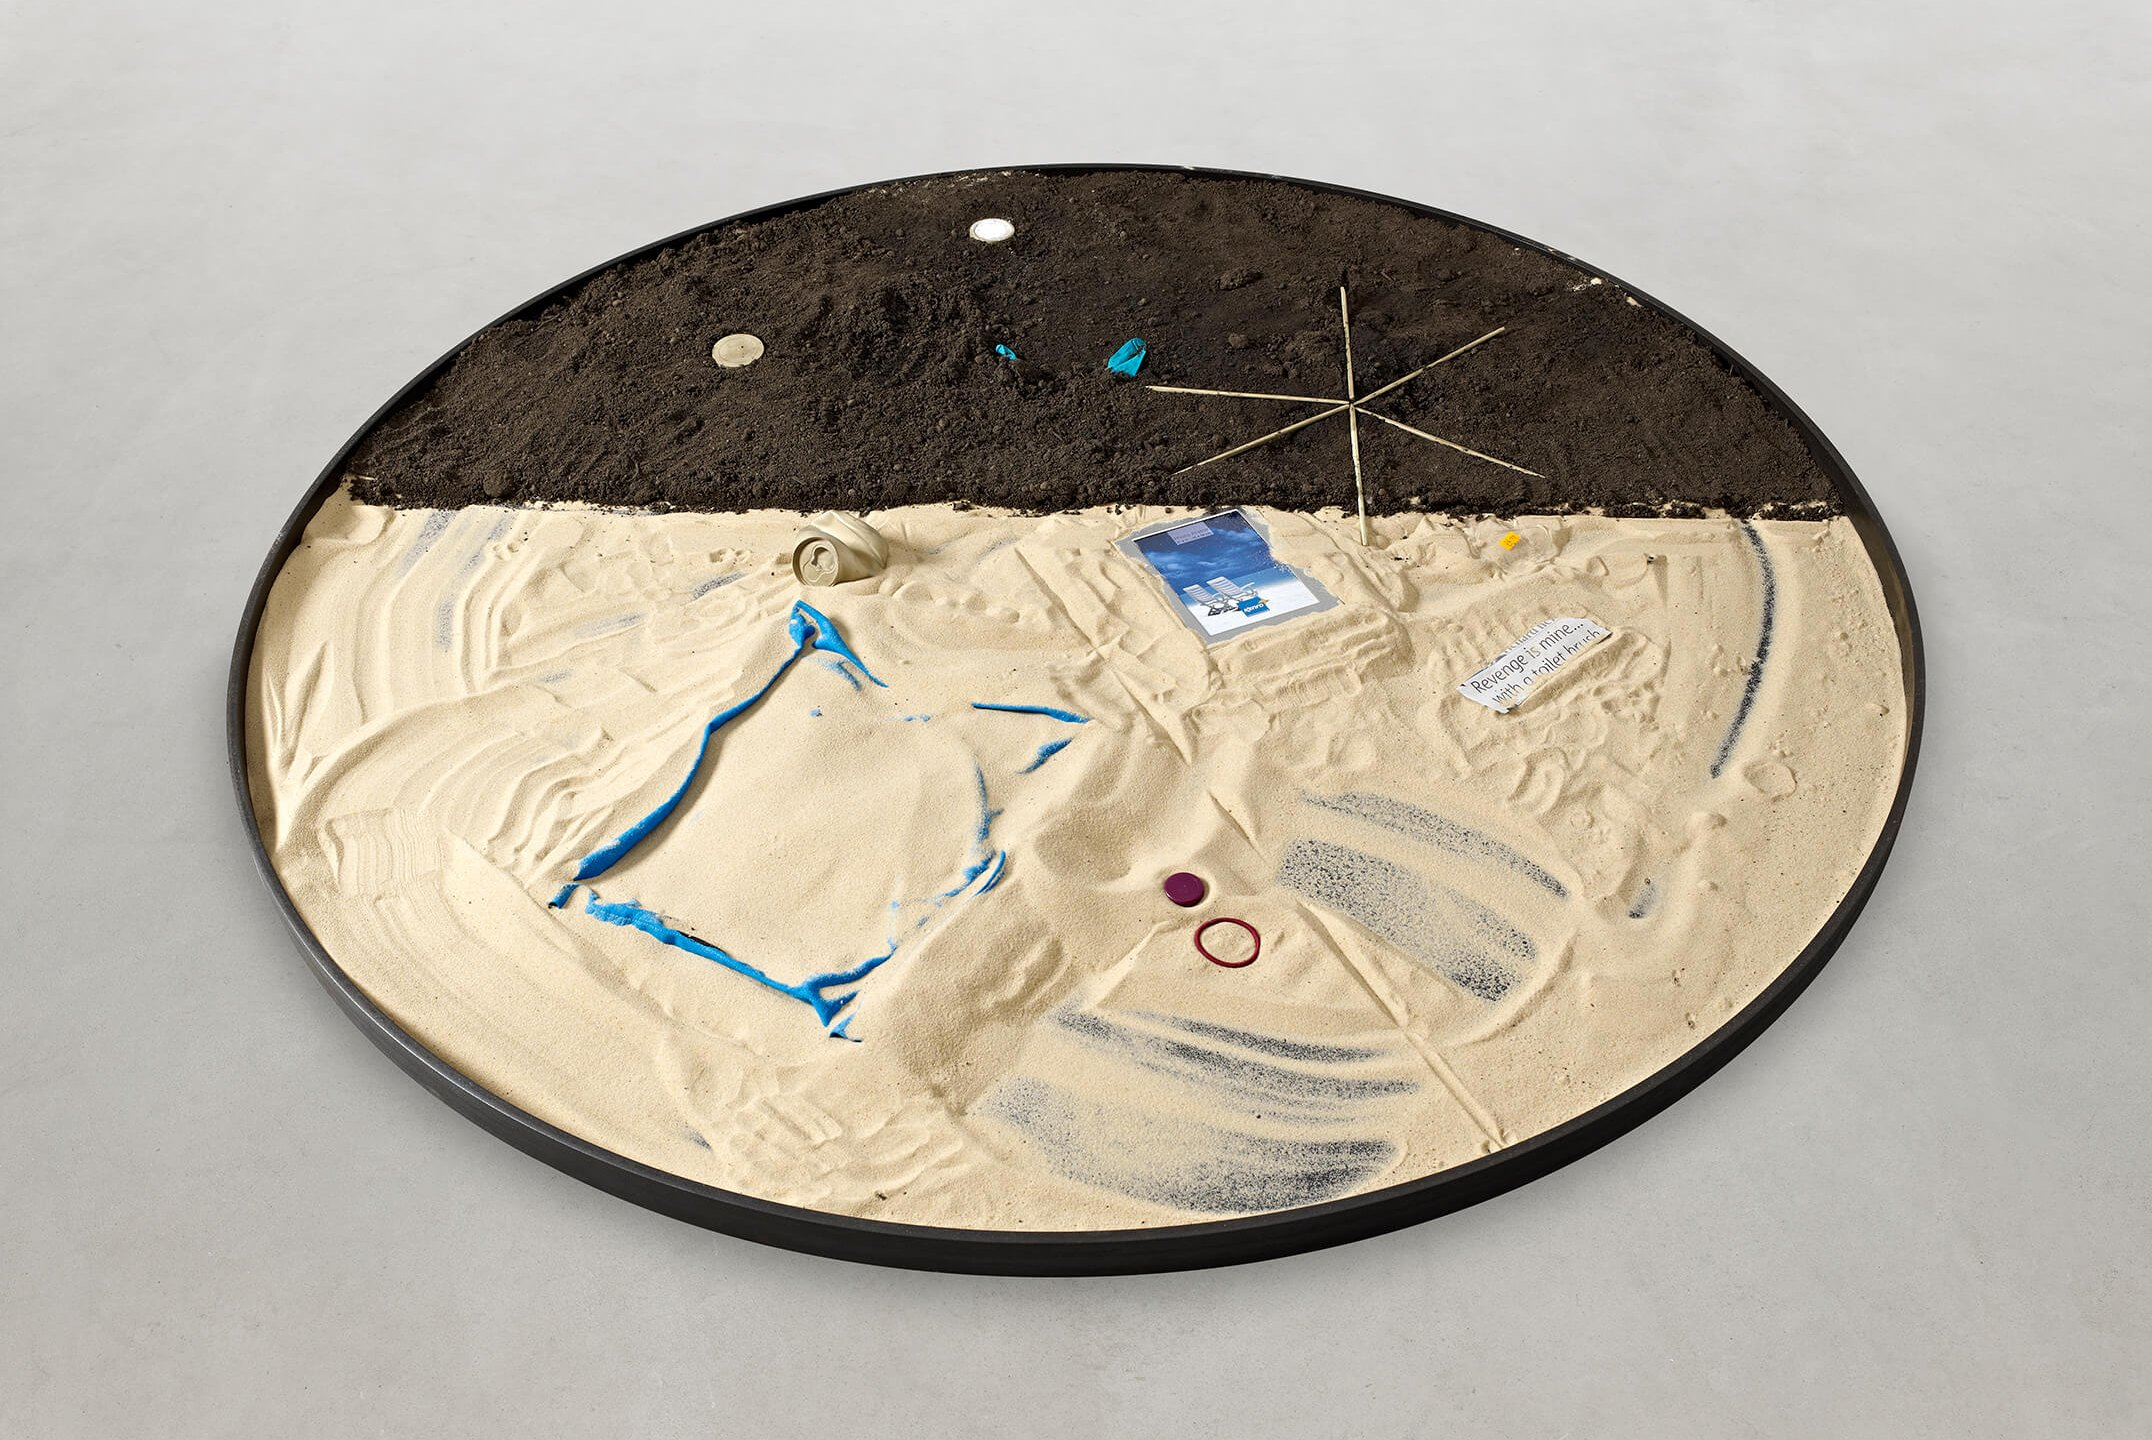 Adriano Costa<em>, Private Property Series / Swimming Pools</em>, 2014, steel, soil, sand, pigment, Guinness, 6 × 150 × 150 cm - Mendes Wood DM